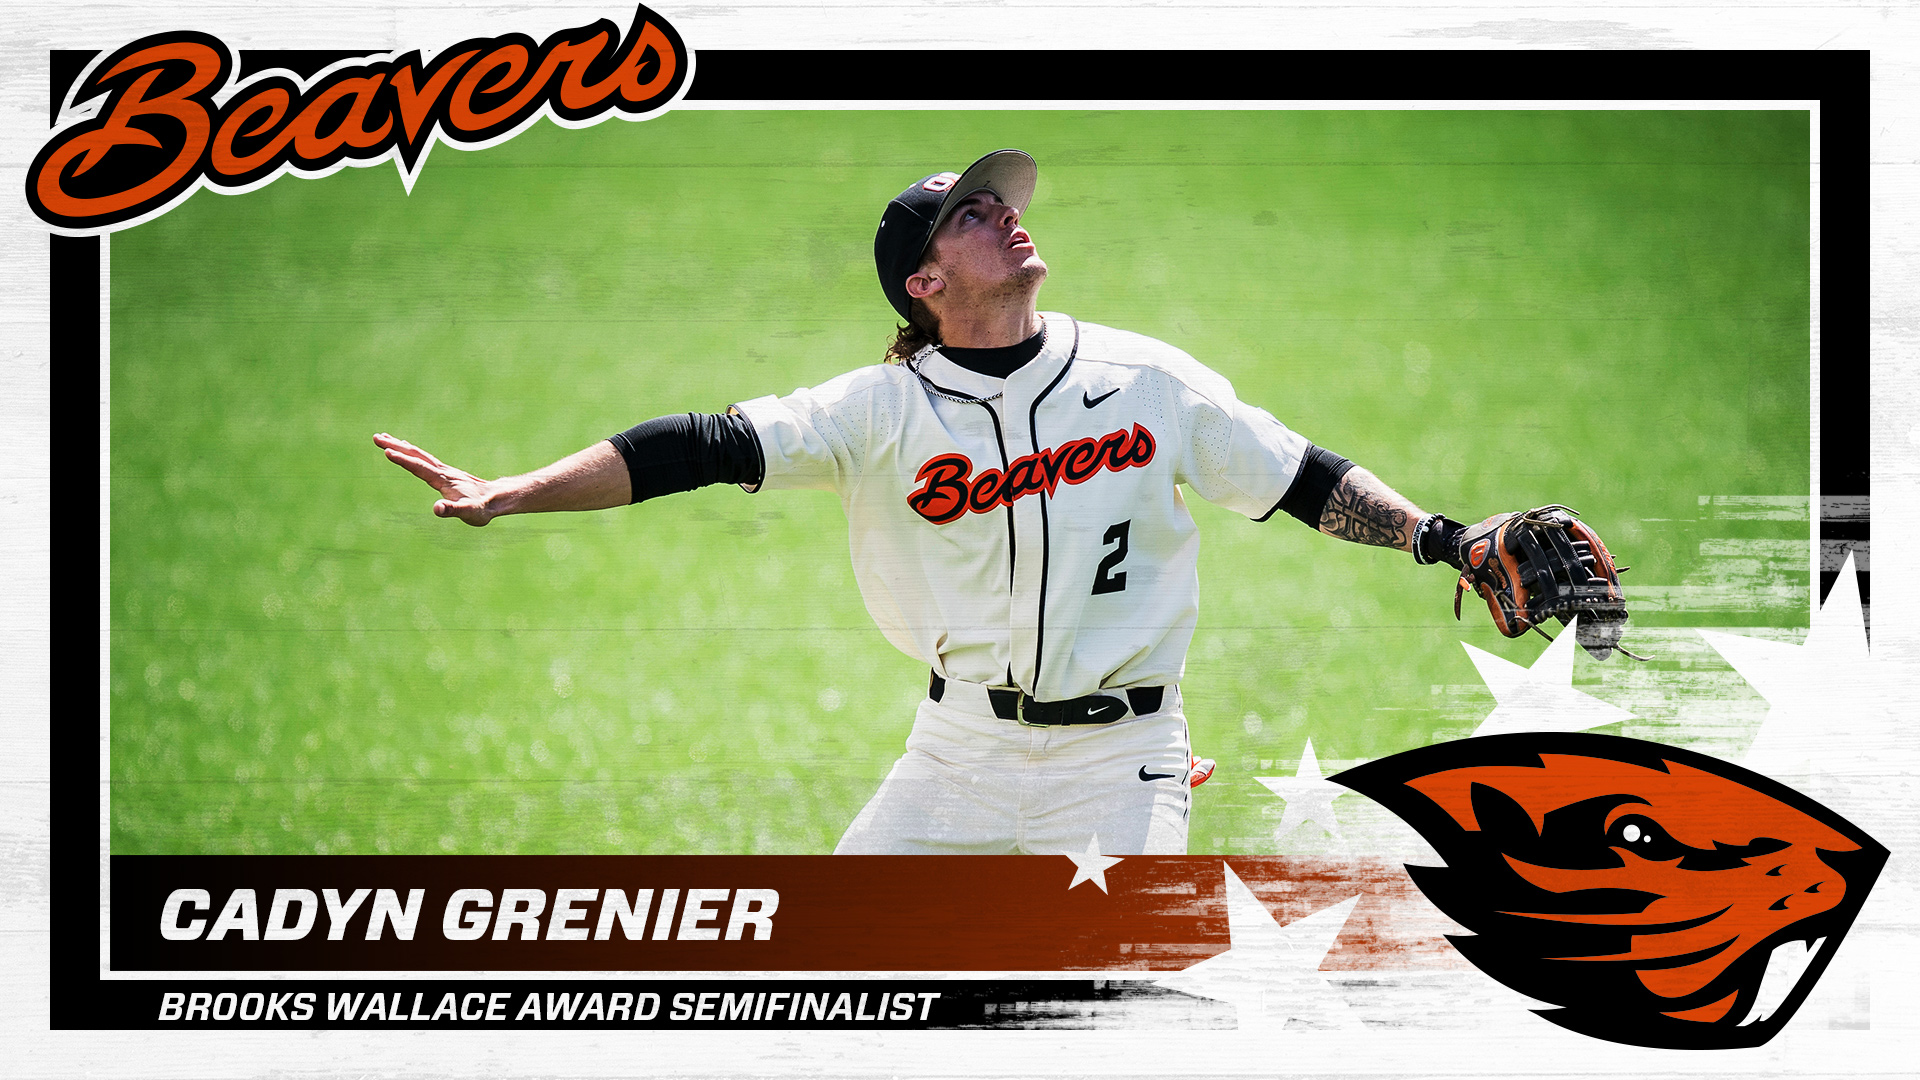 Cadyn Grenier Named A Semifinalist For Brooks Wallace Award